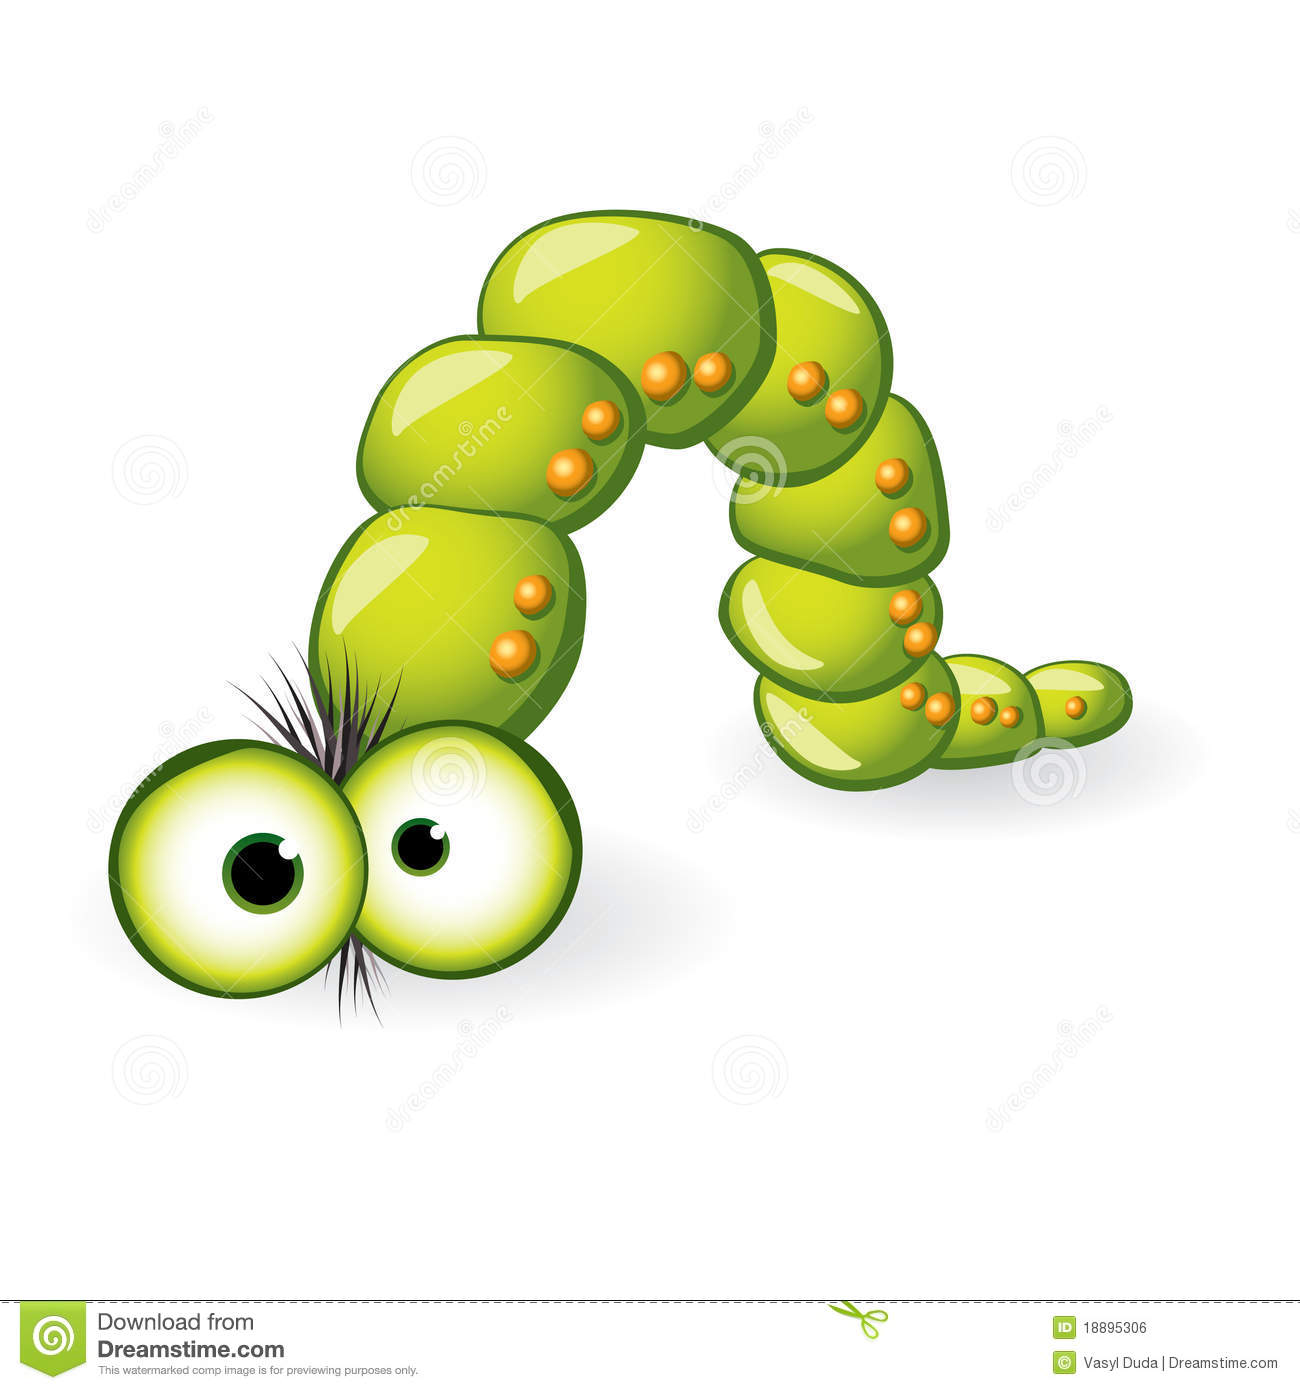 Larva Cartoon Characters Related Keywords - Larva Cartoon ...